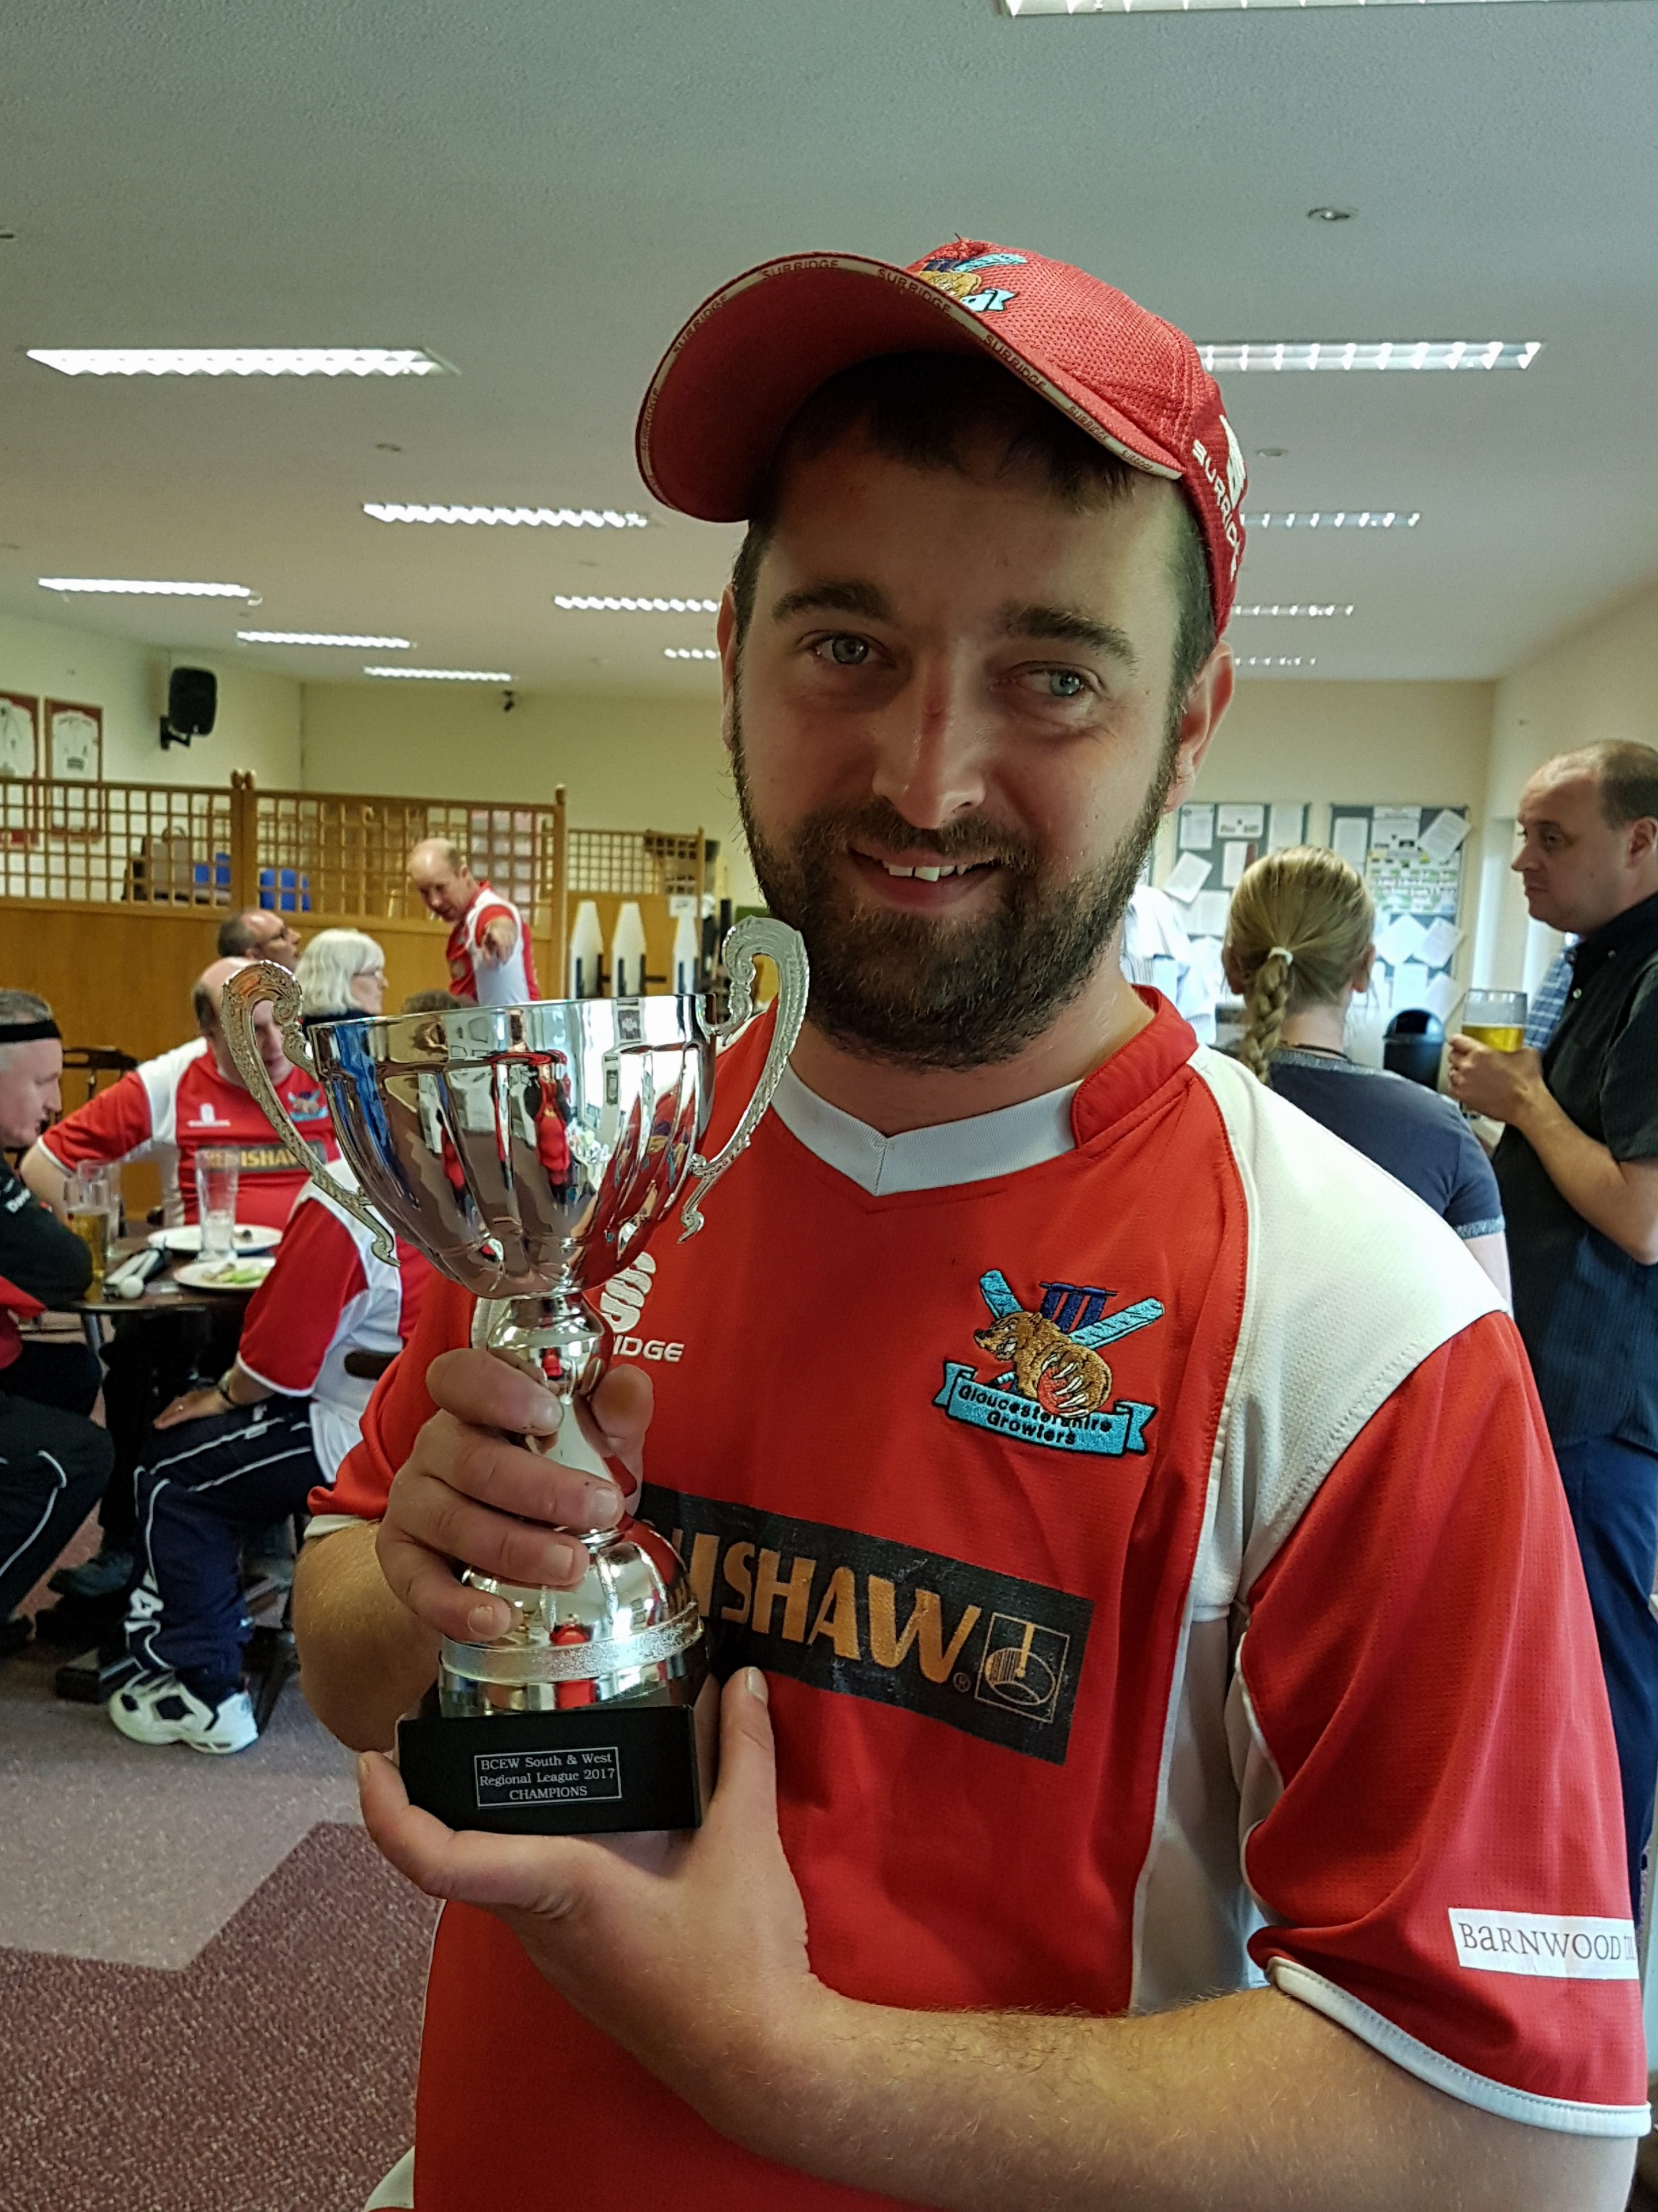 Marc in a red shirt and cap posing with his trophy in front of a bar.